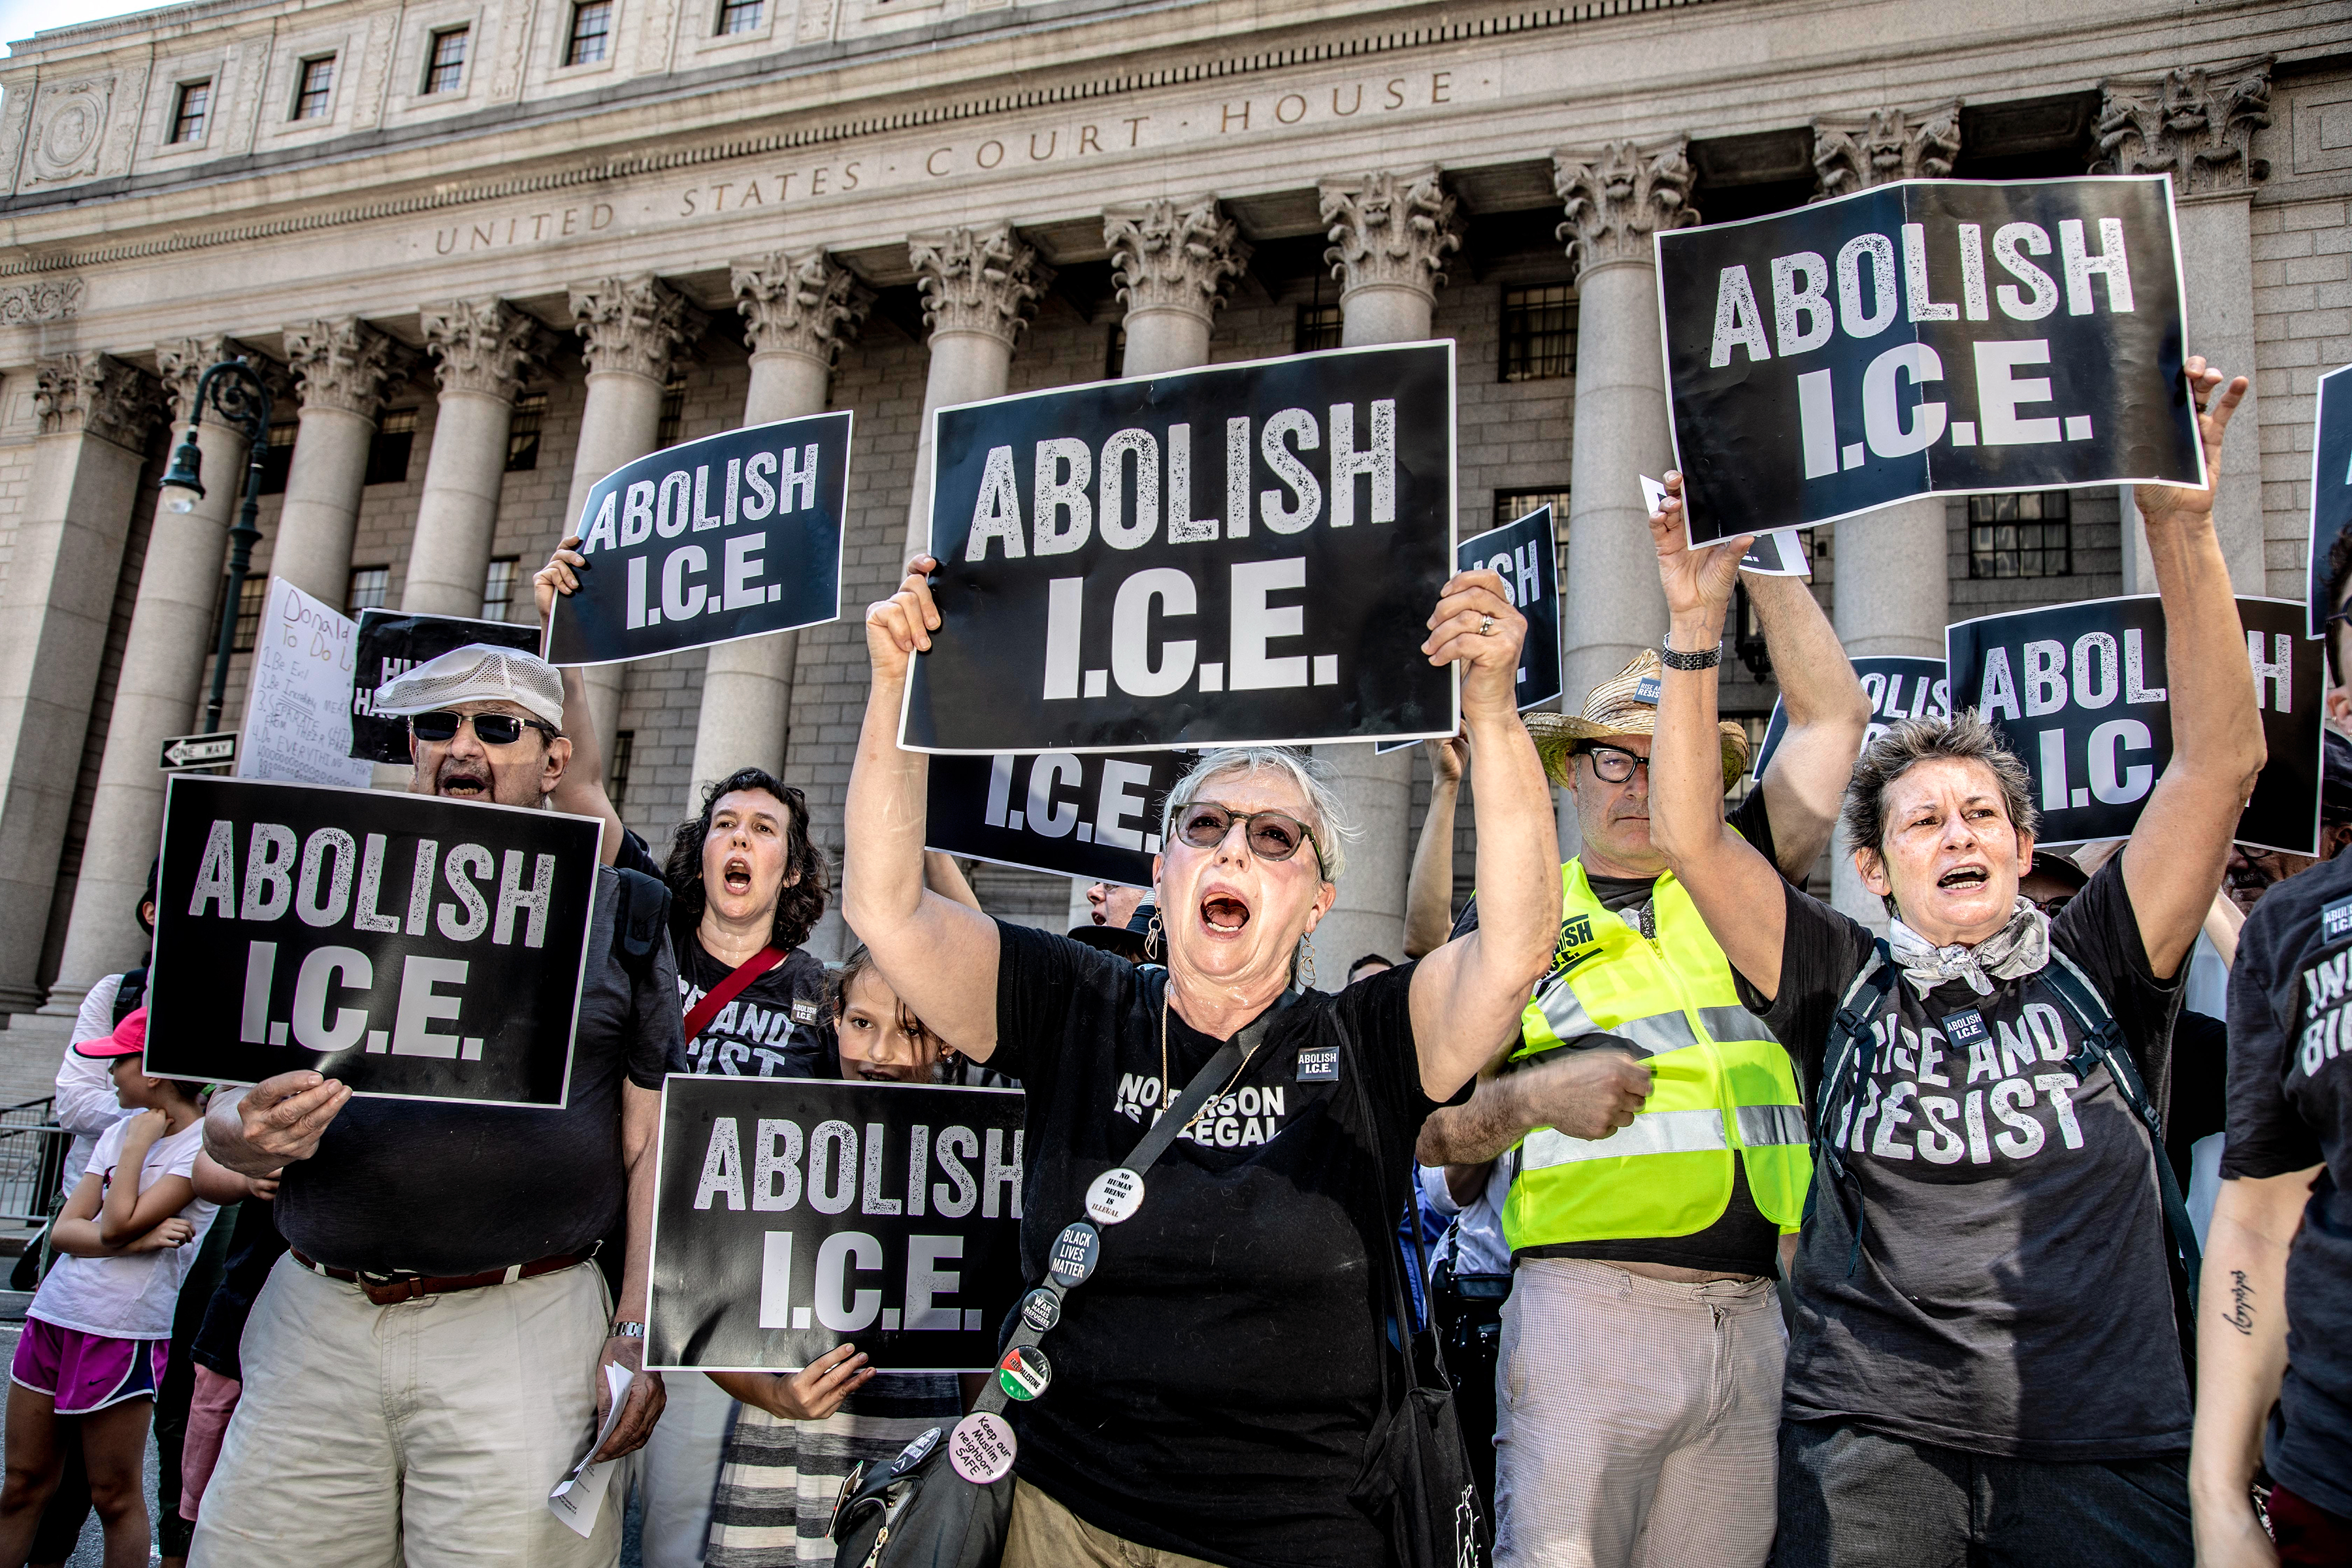 How the Abolish ICE Movement Can Succeed - Rolling Stone